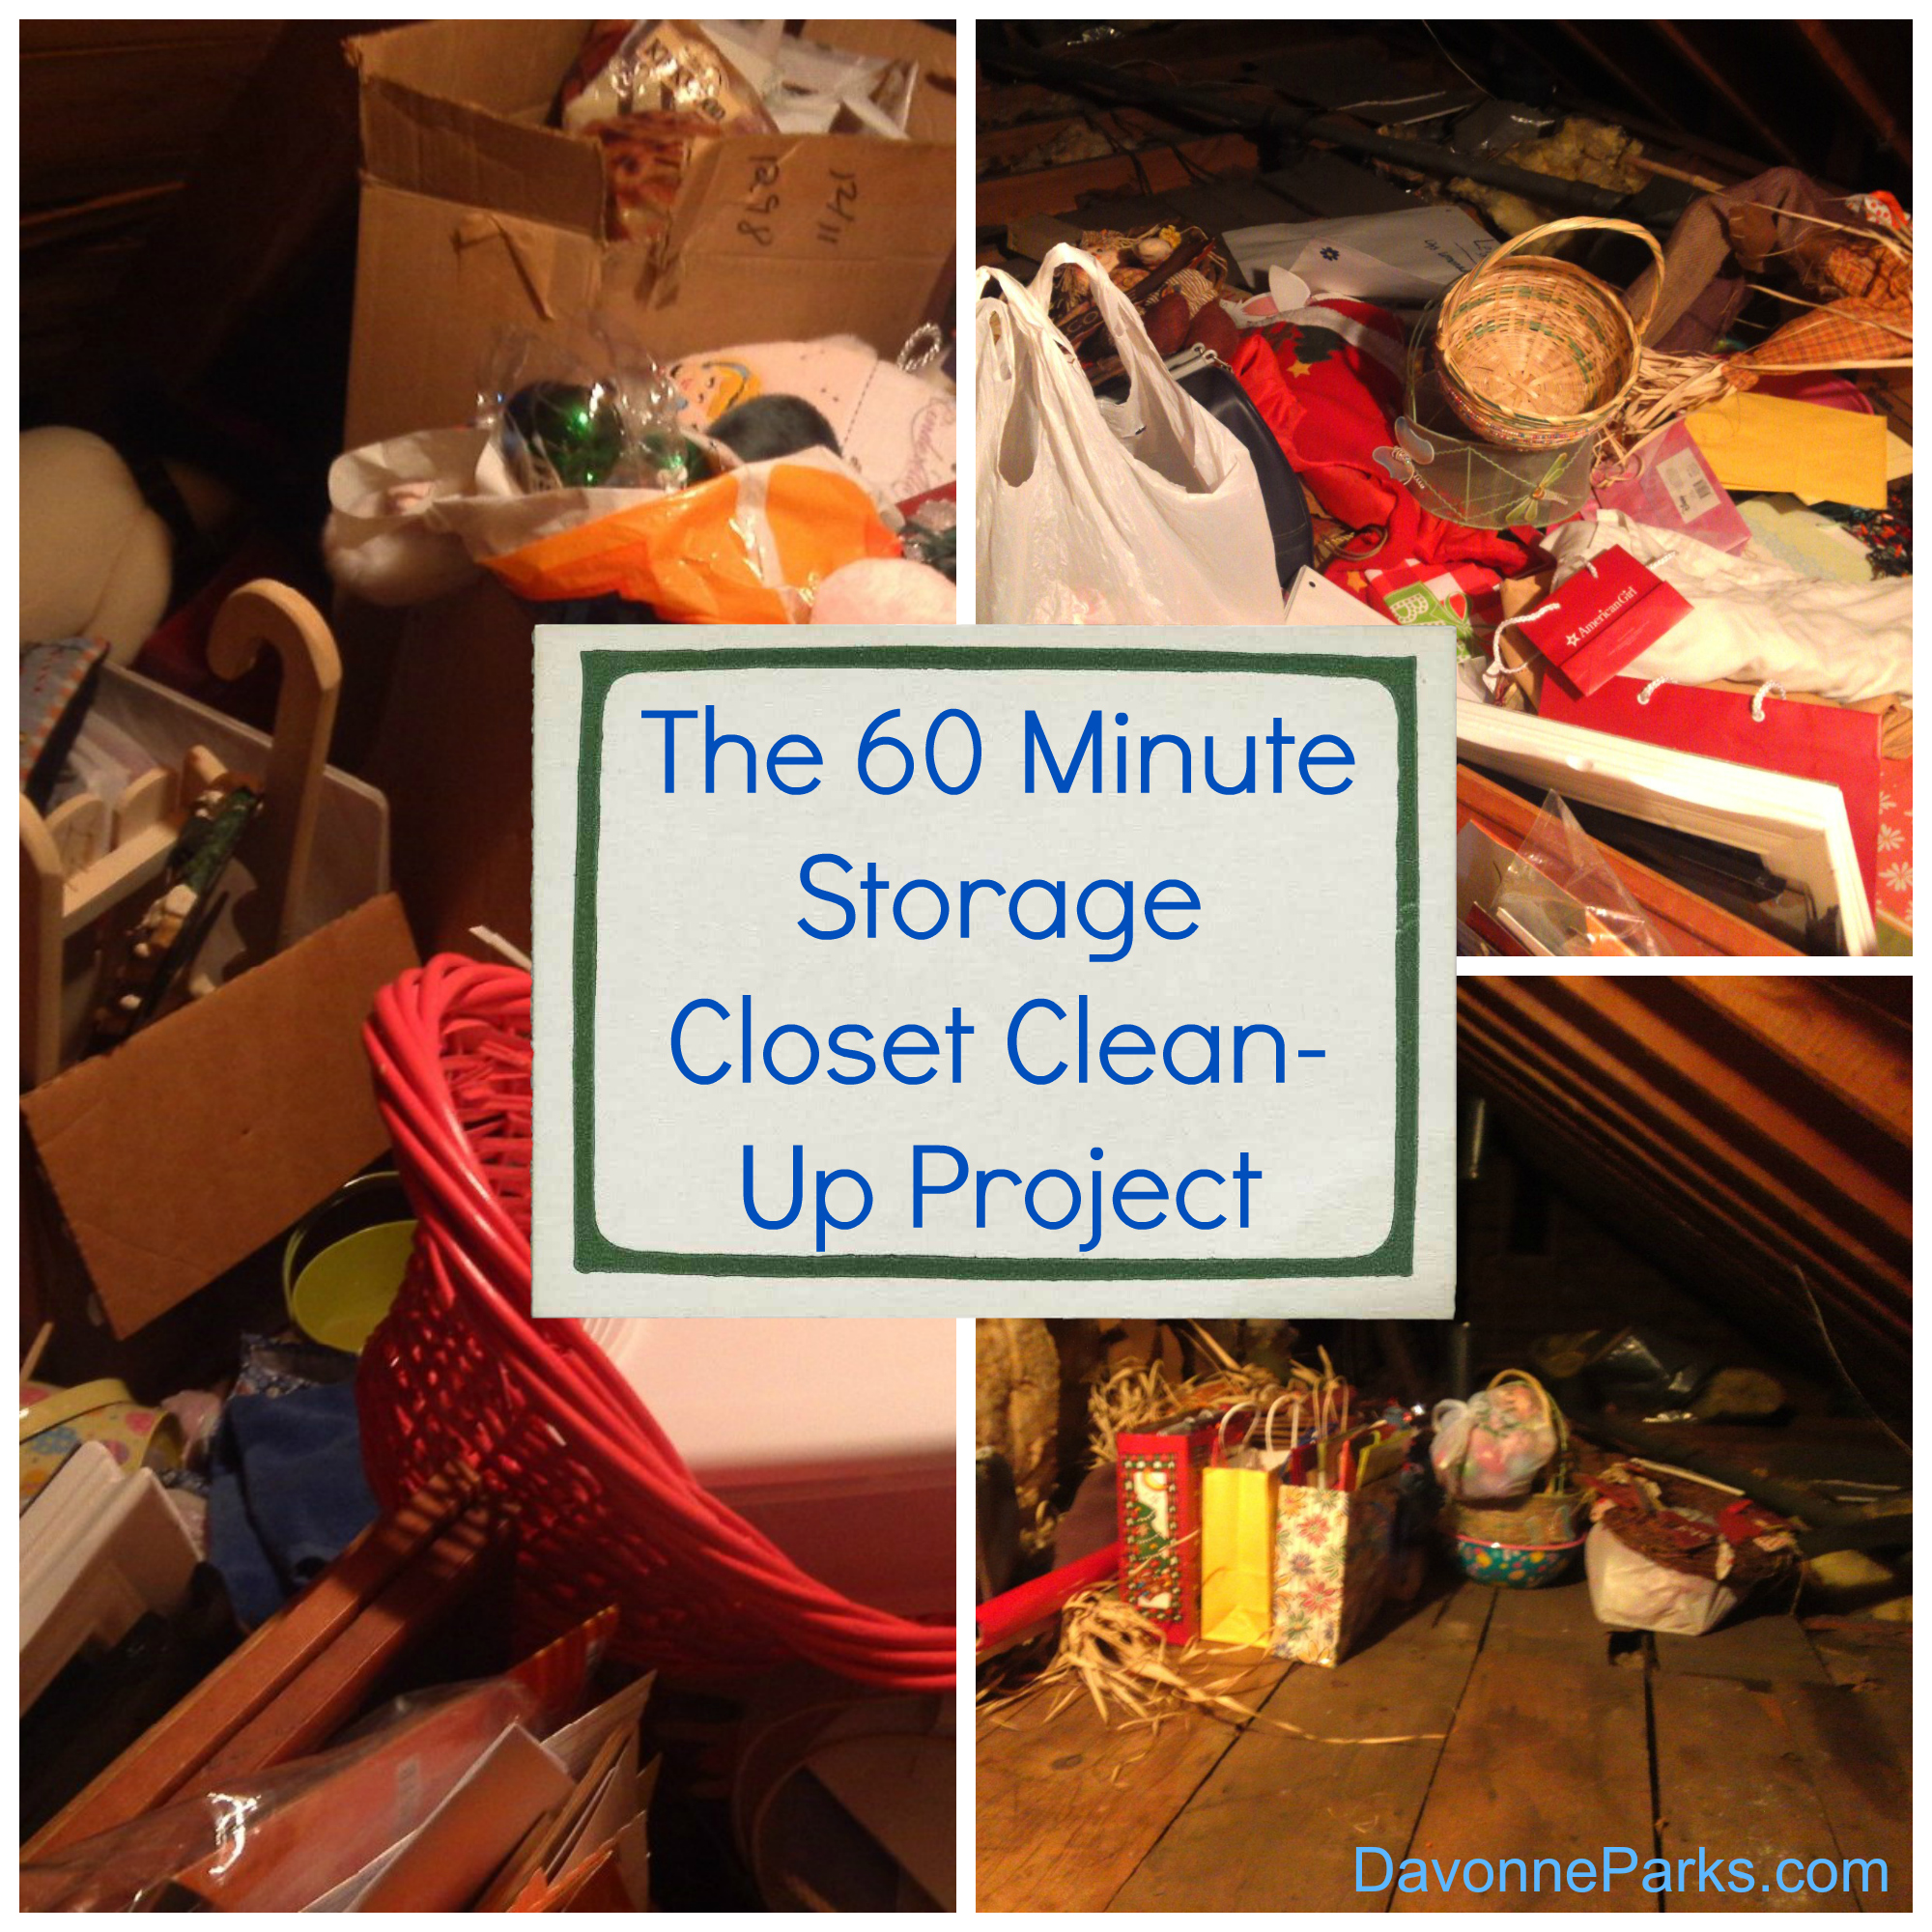 The 60 Minute Storage Closet Clean-up Project